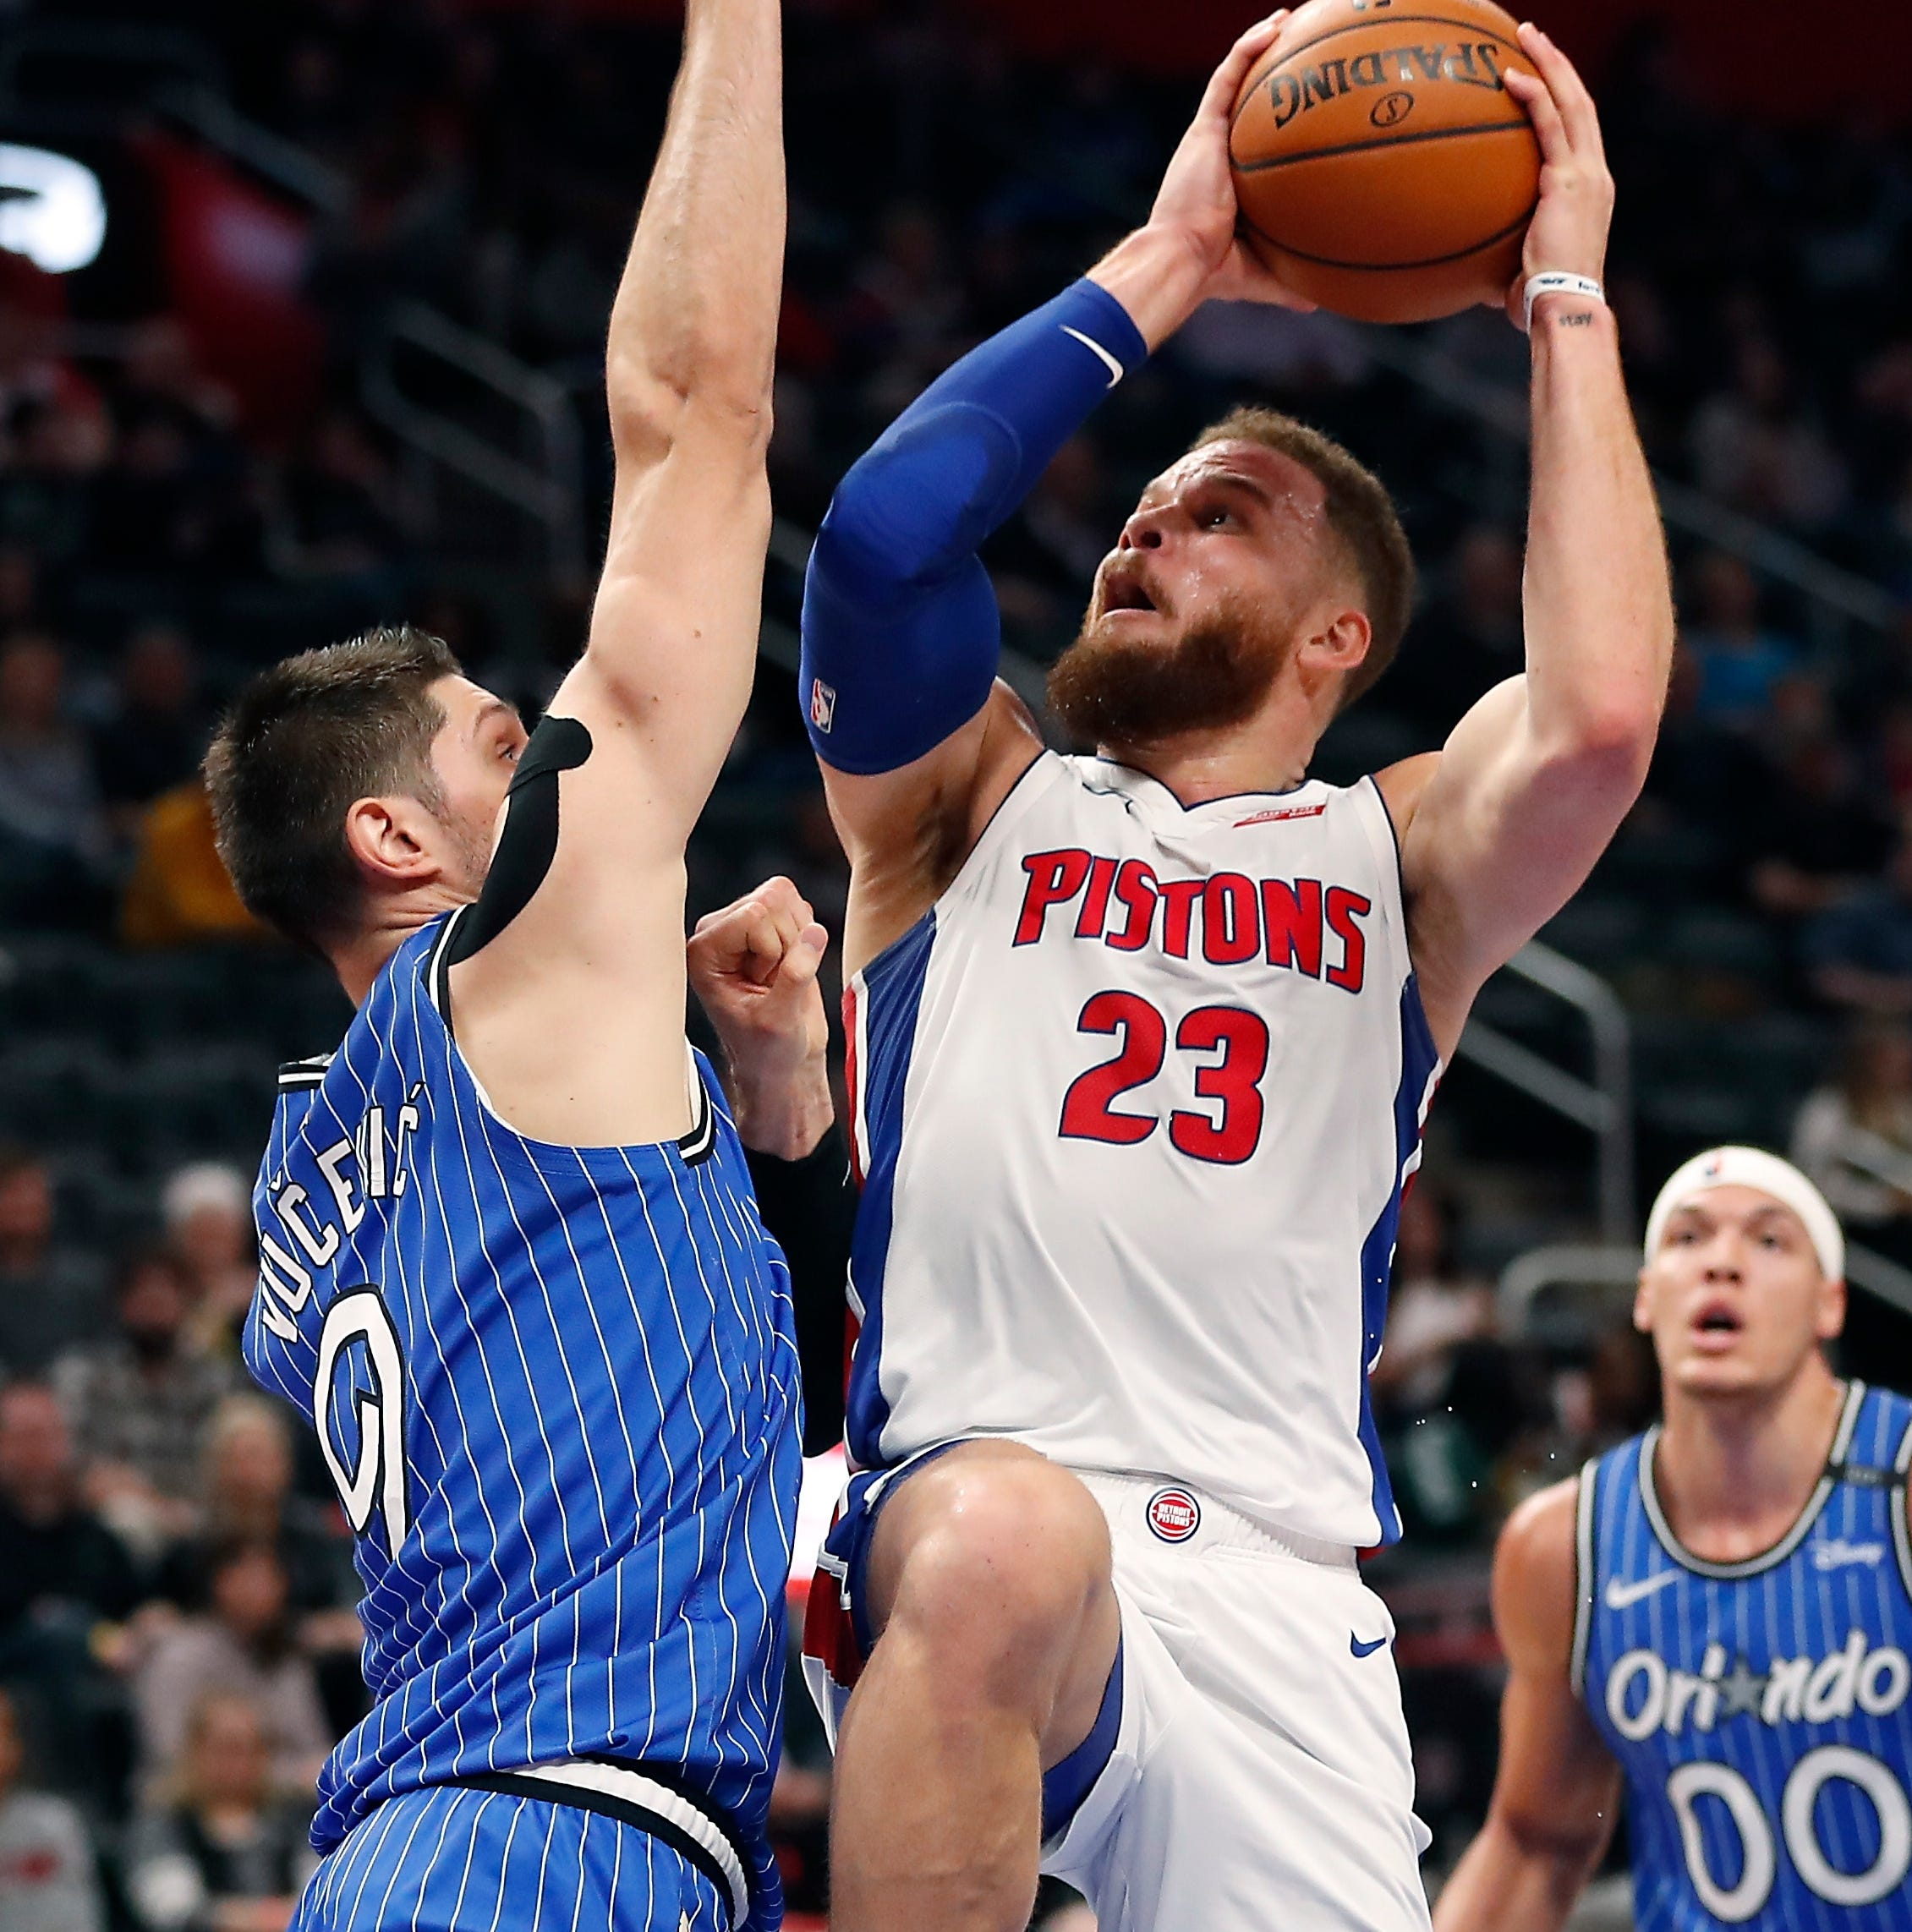 Beard: Topsy-turvy Pistons are tough bunch to predict